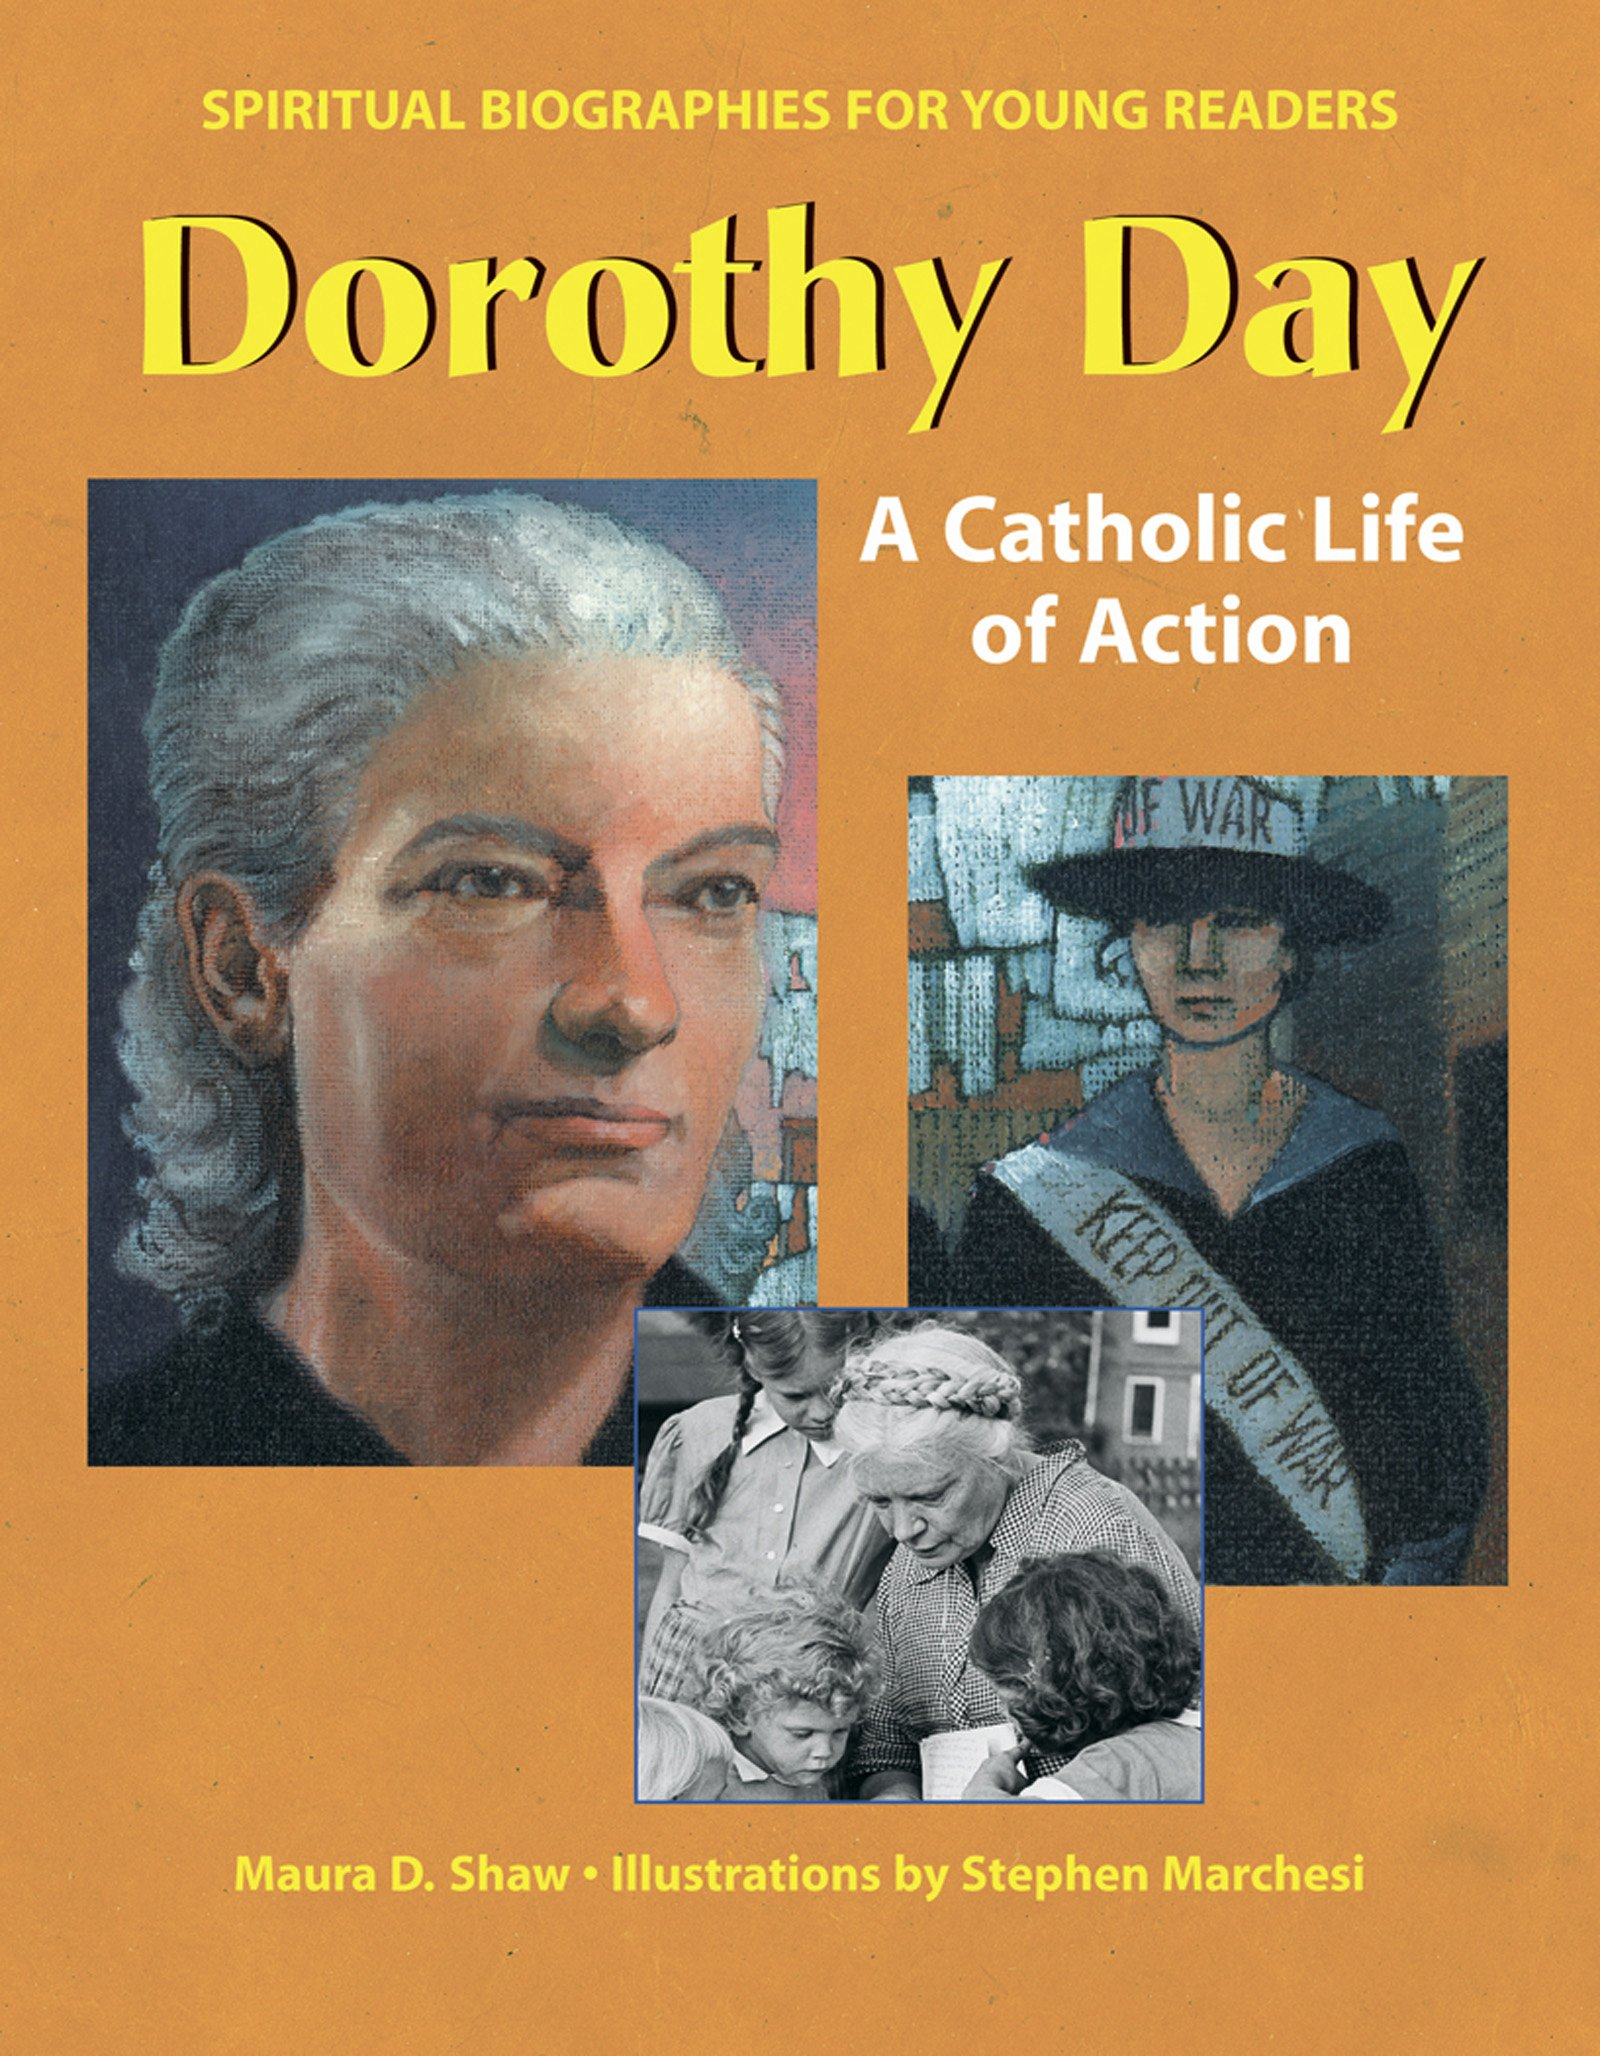 Download Dorothy Day: A Catholic Life of Action (Spiritual Biographies for Young Readers) PDF